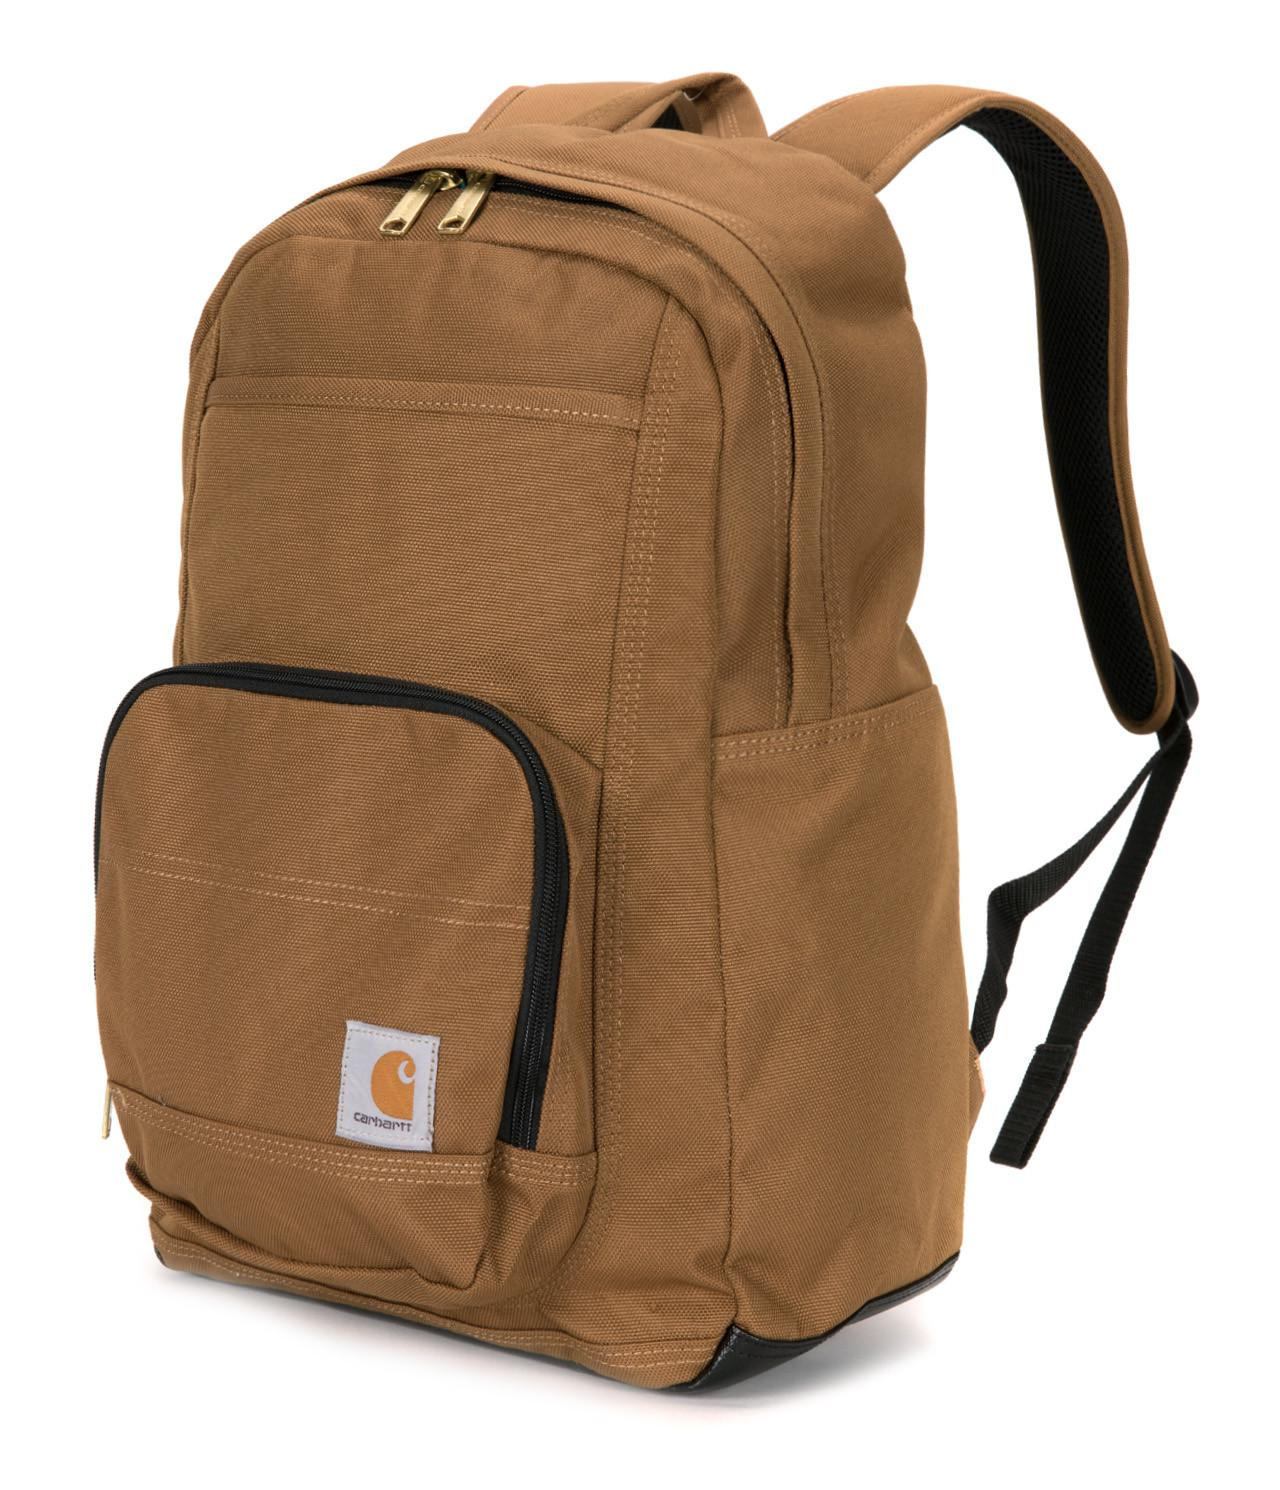 5367bb204 Carhartt Legacy Classic Work Backpack With Padded Laptop Sleeve ...